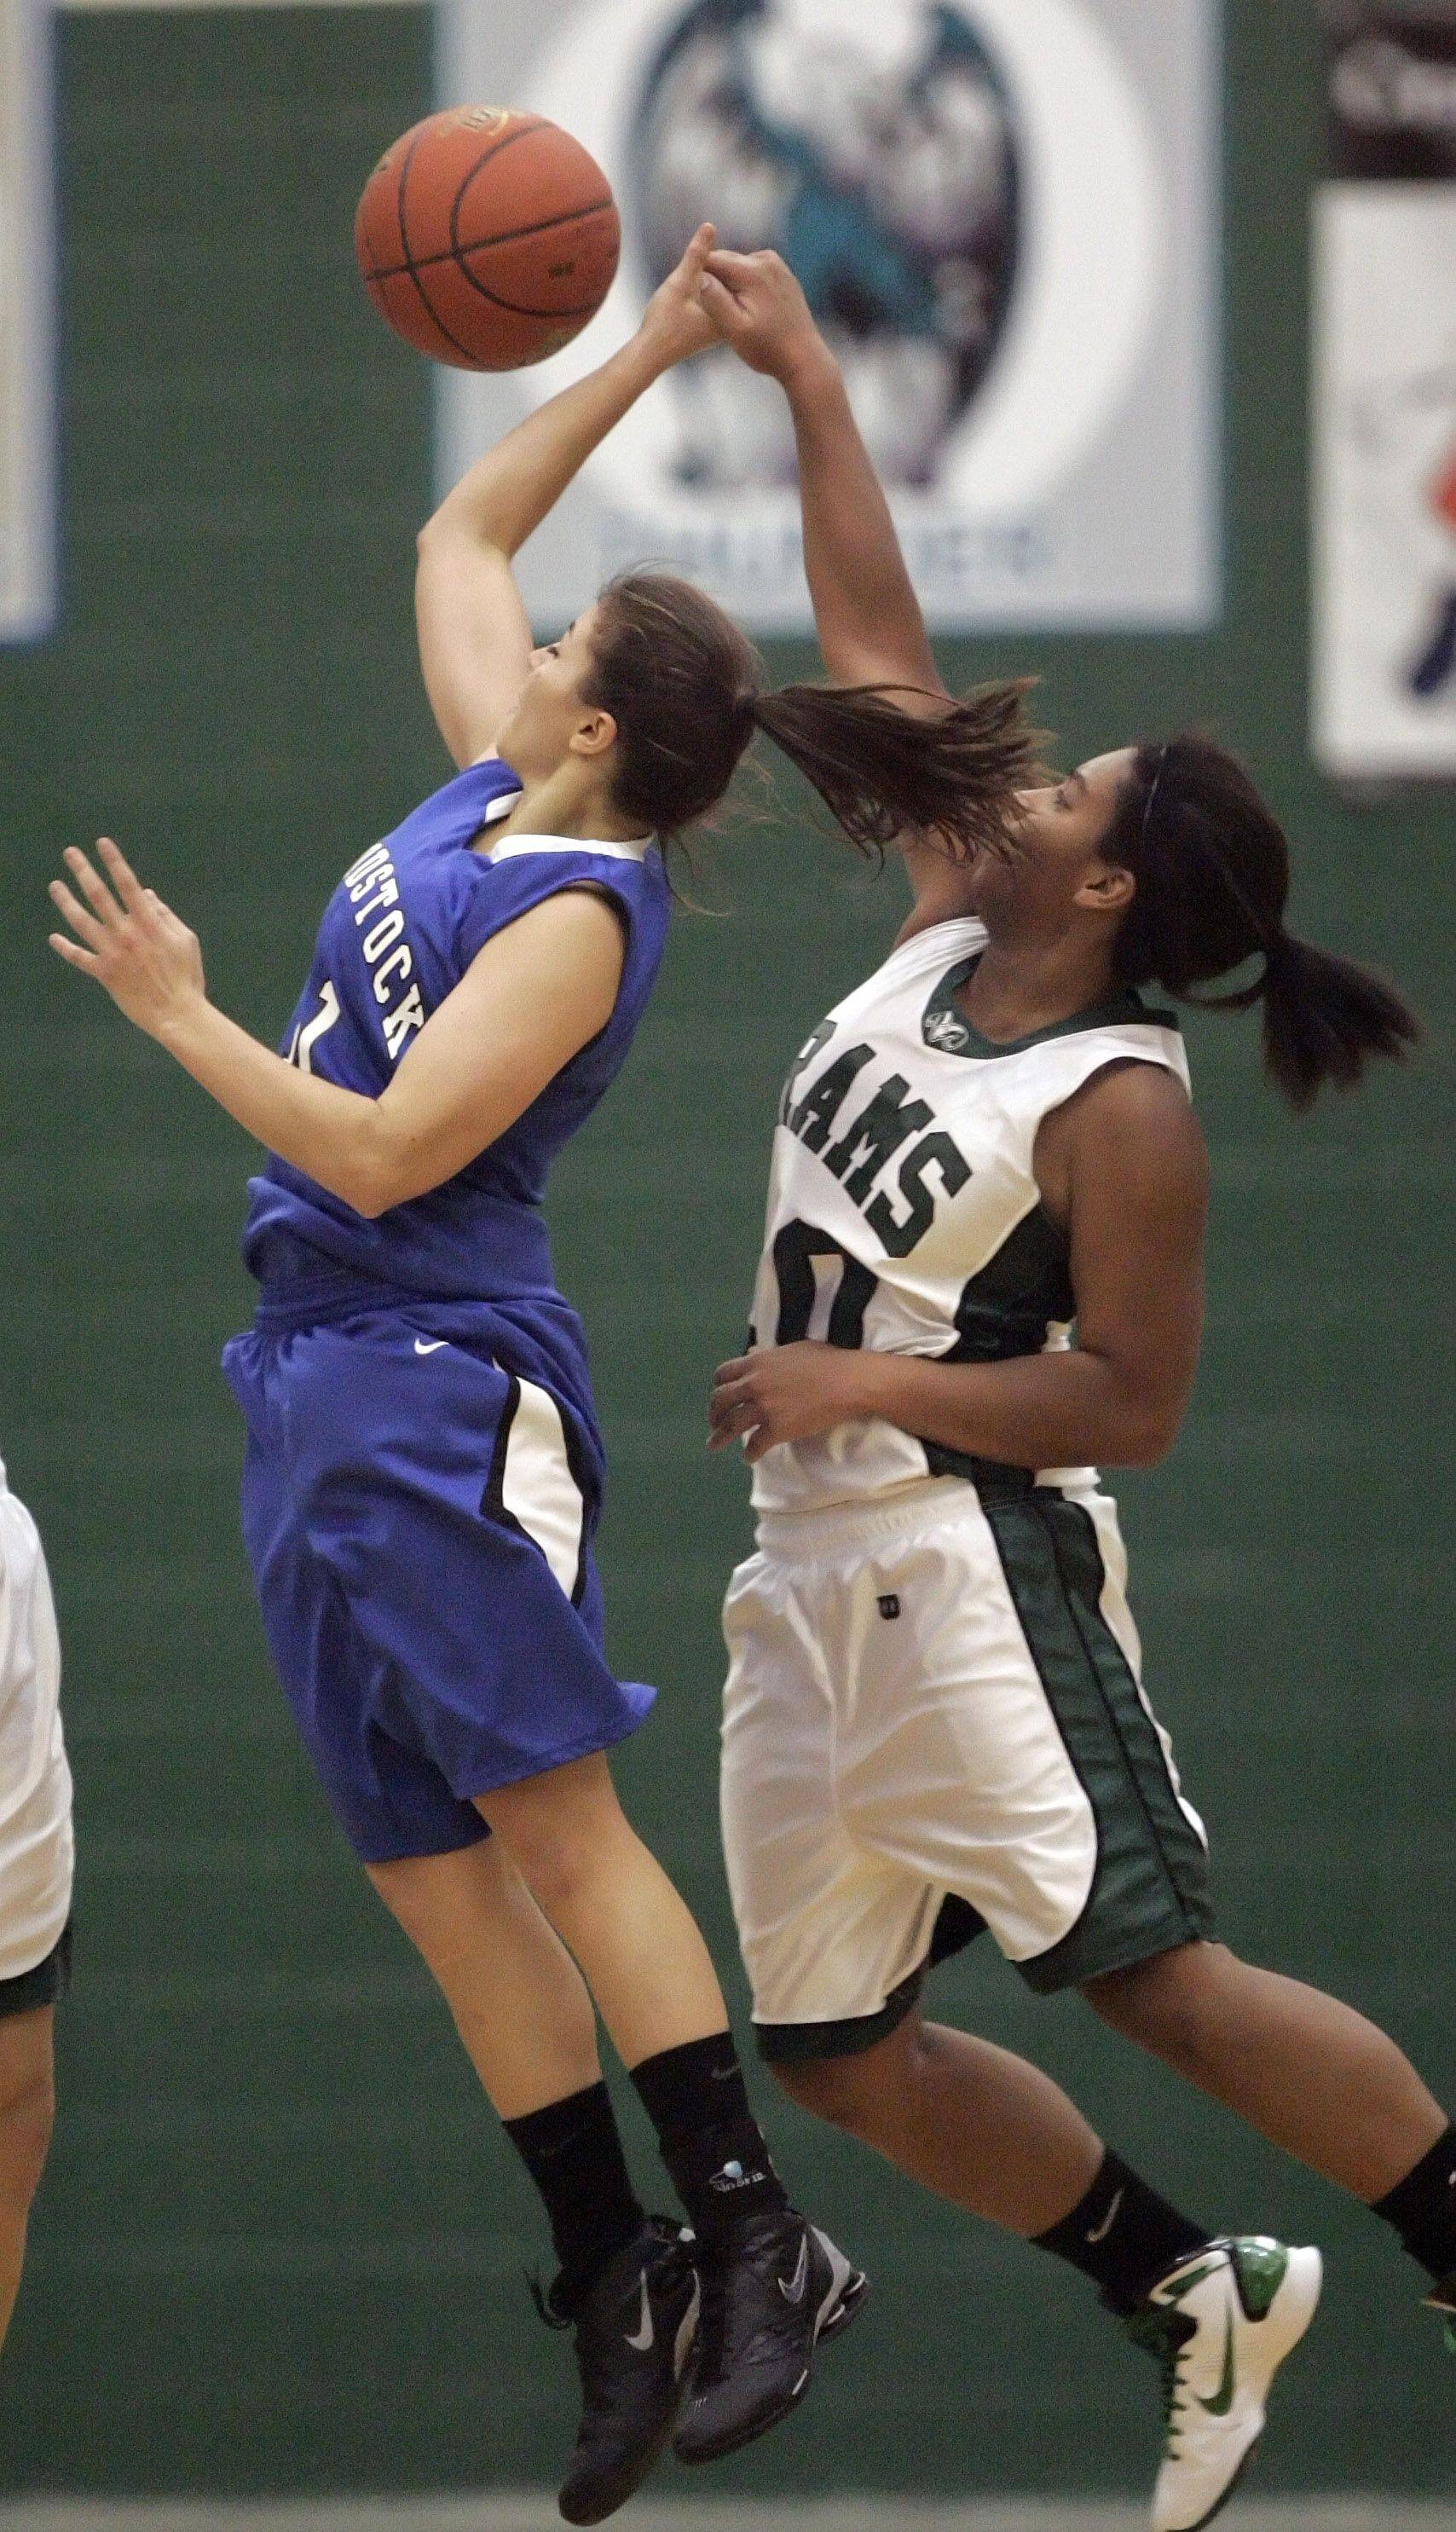 scarbro girls Gchs mourns loss of former basketball star alex scarbro was a standout player on the 2010-11 gchs girls please share your memories of alex scarbro in the.